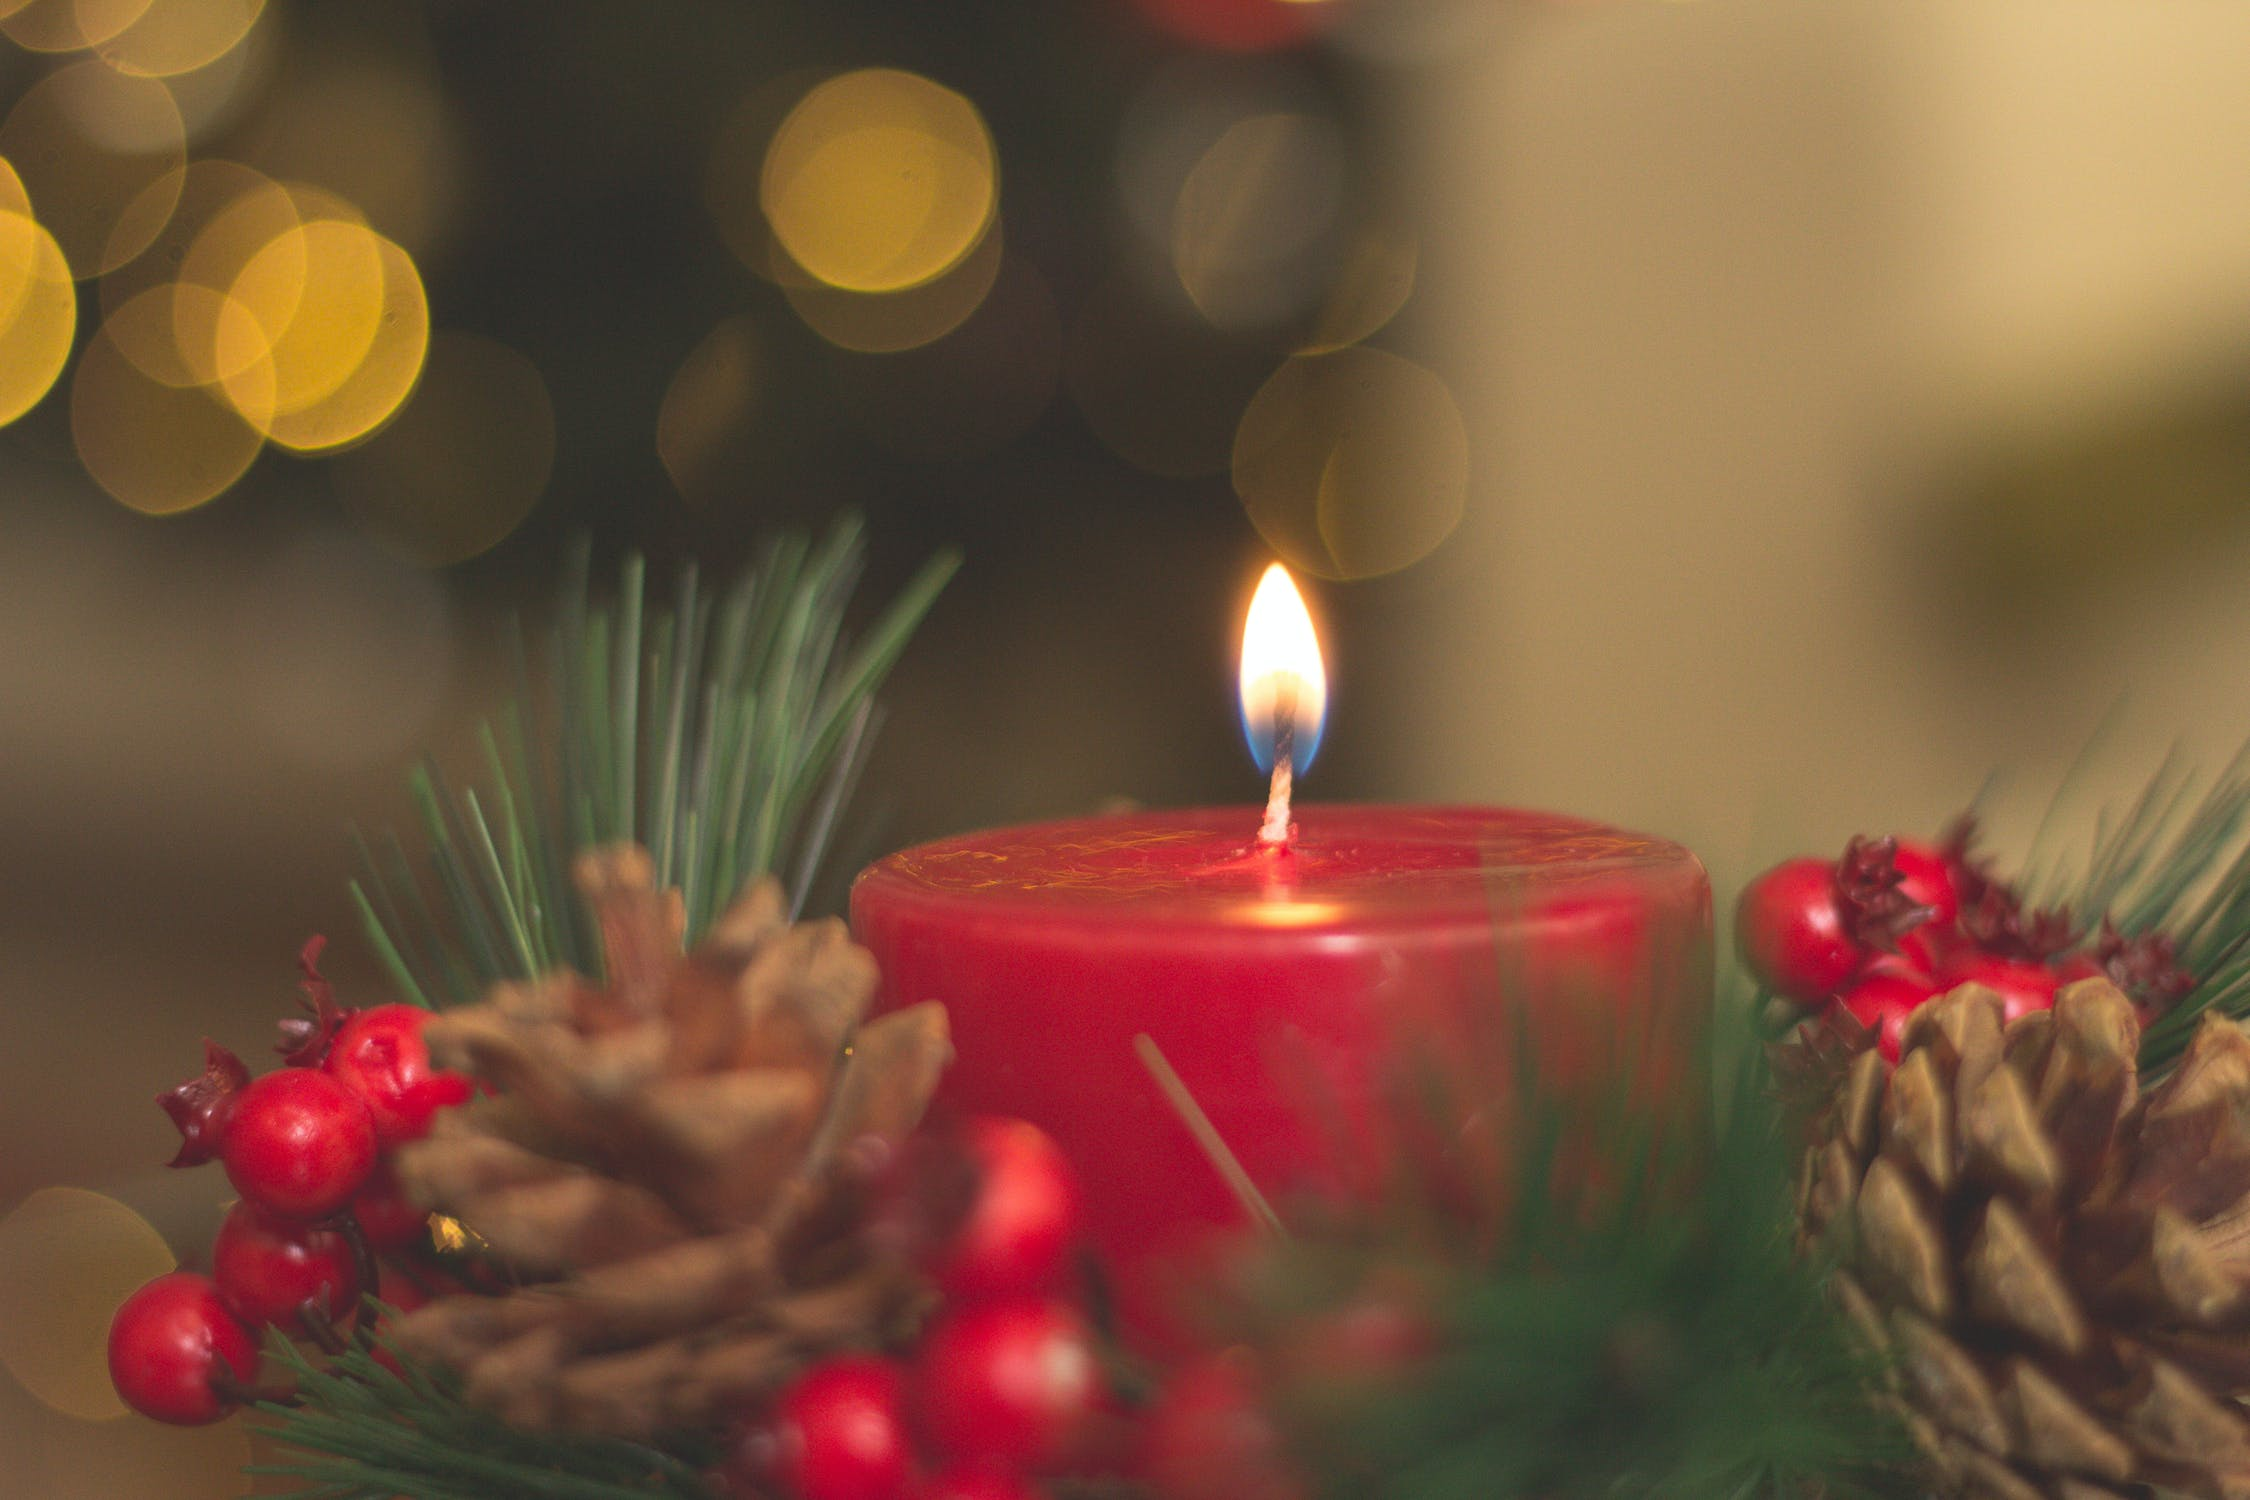 Lit candle surrounded by pinecones, greenery, and winter berries